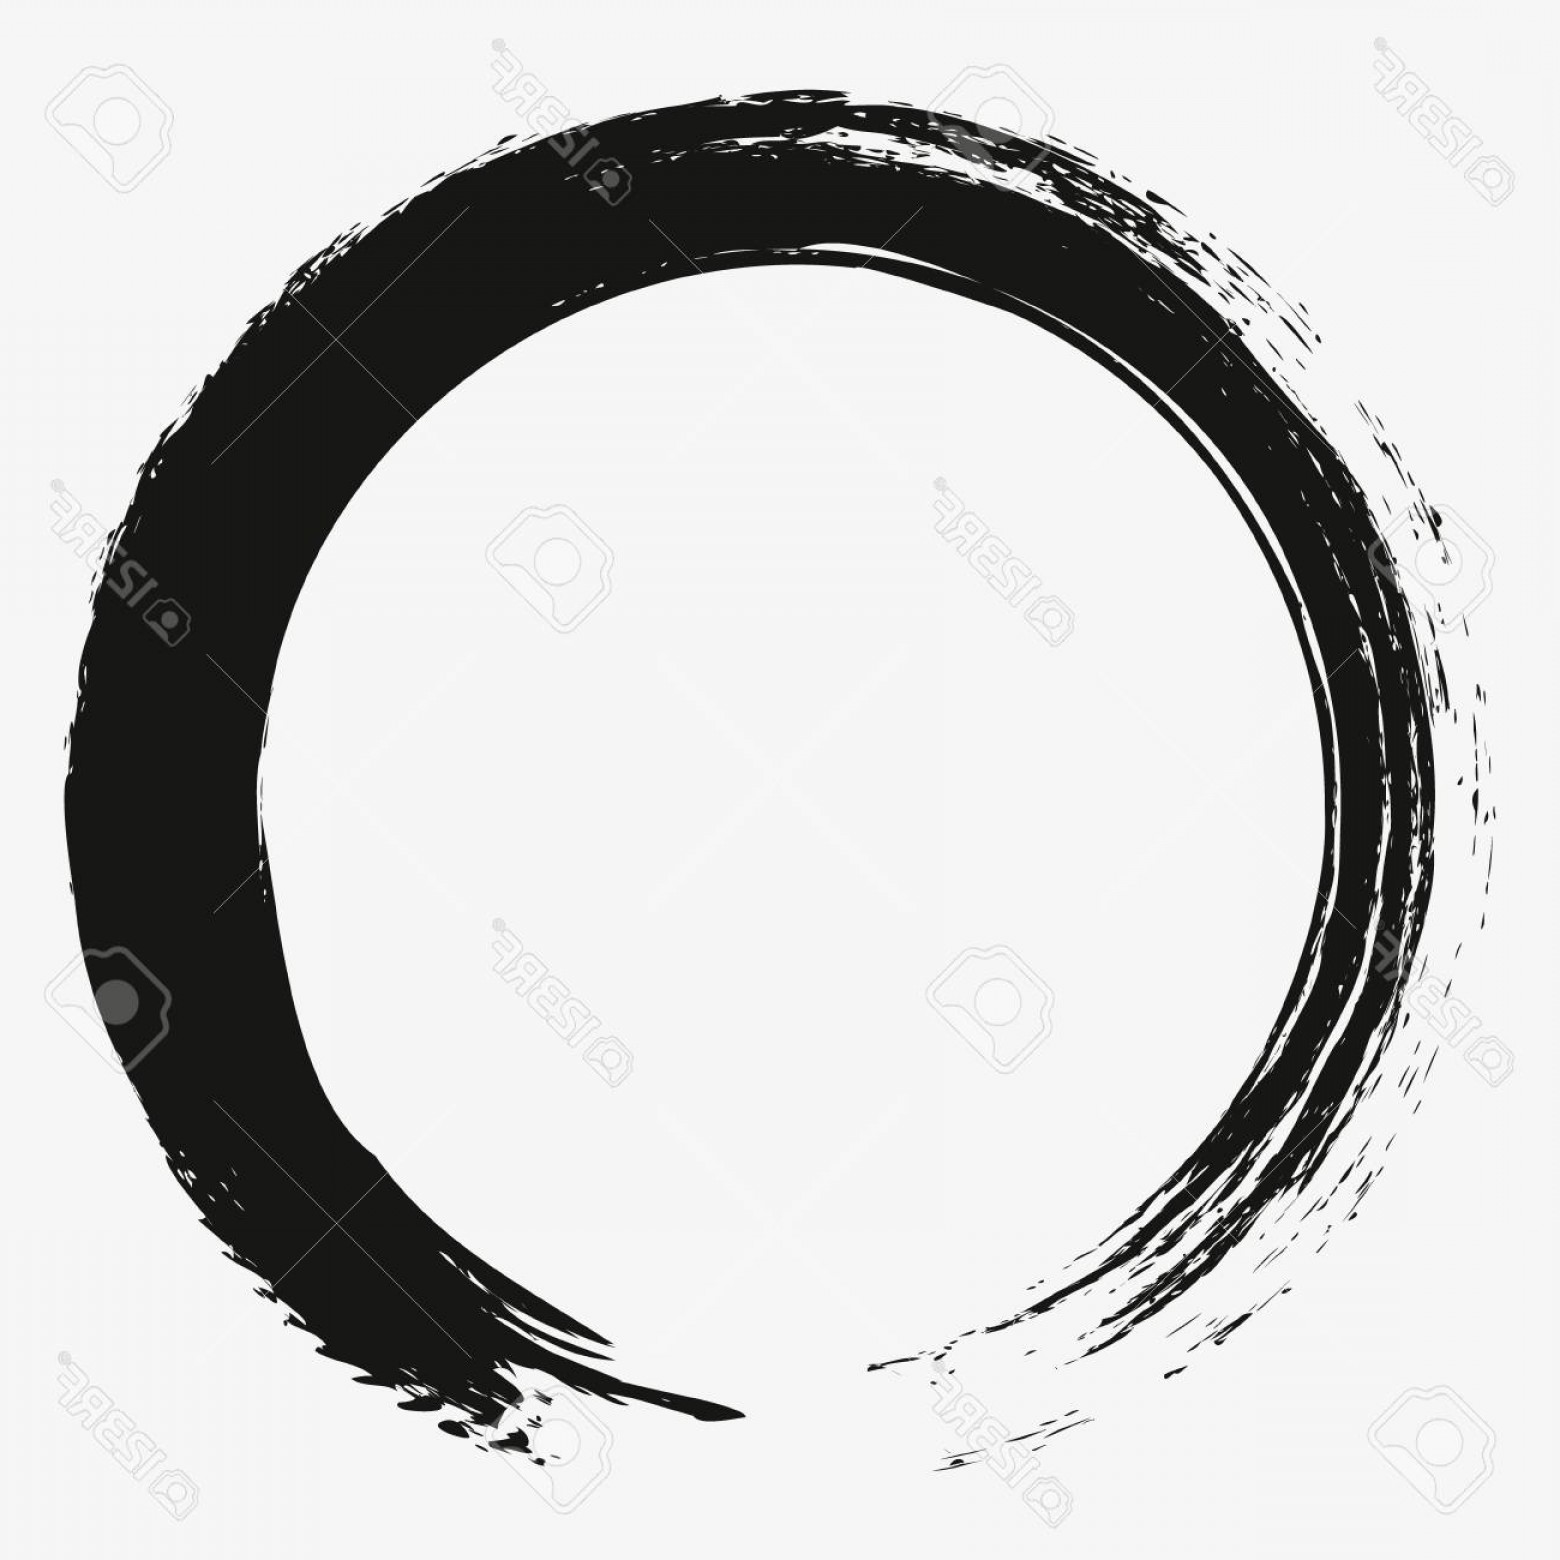 Enso Vector At Free For Personal Use Circuit Board Tshirts Spreadshirt 1560x1560 Photostock Painting Zen Circle Brush